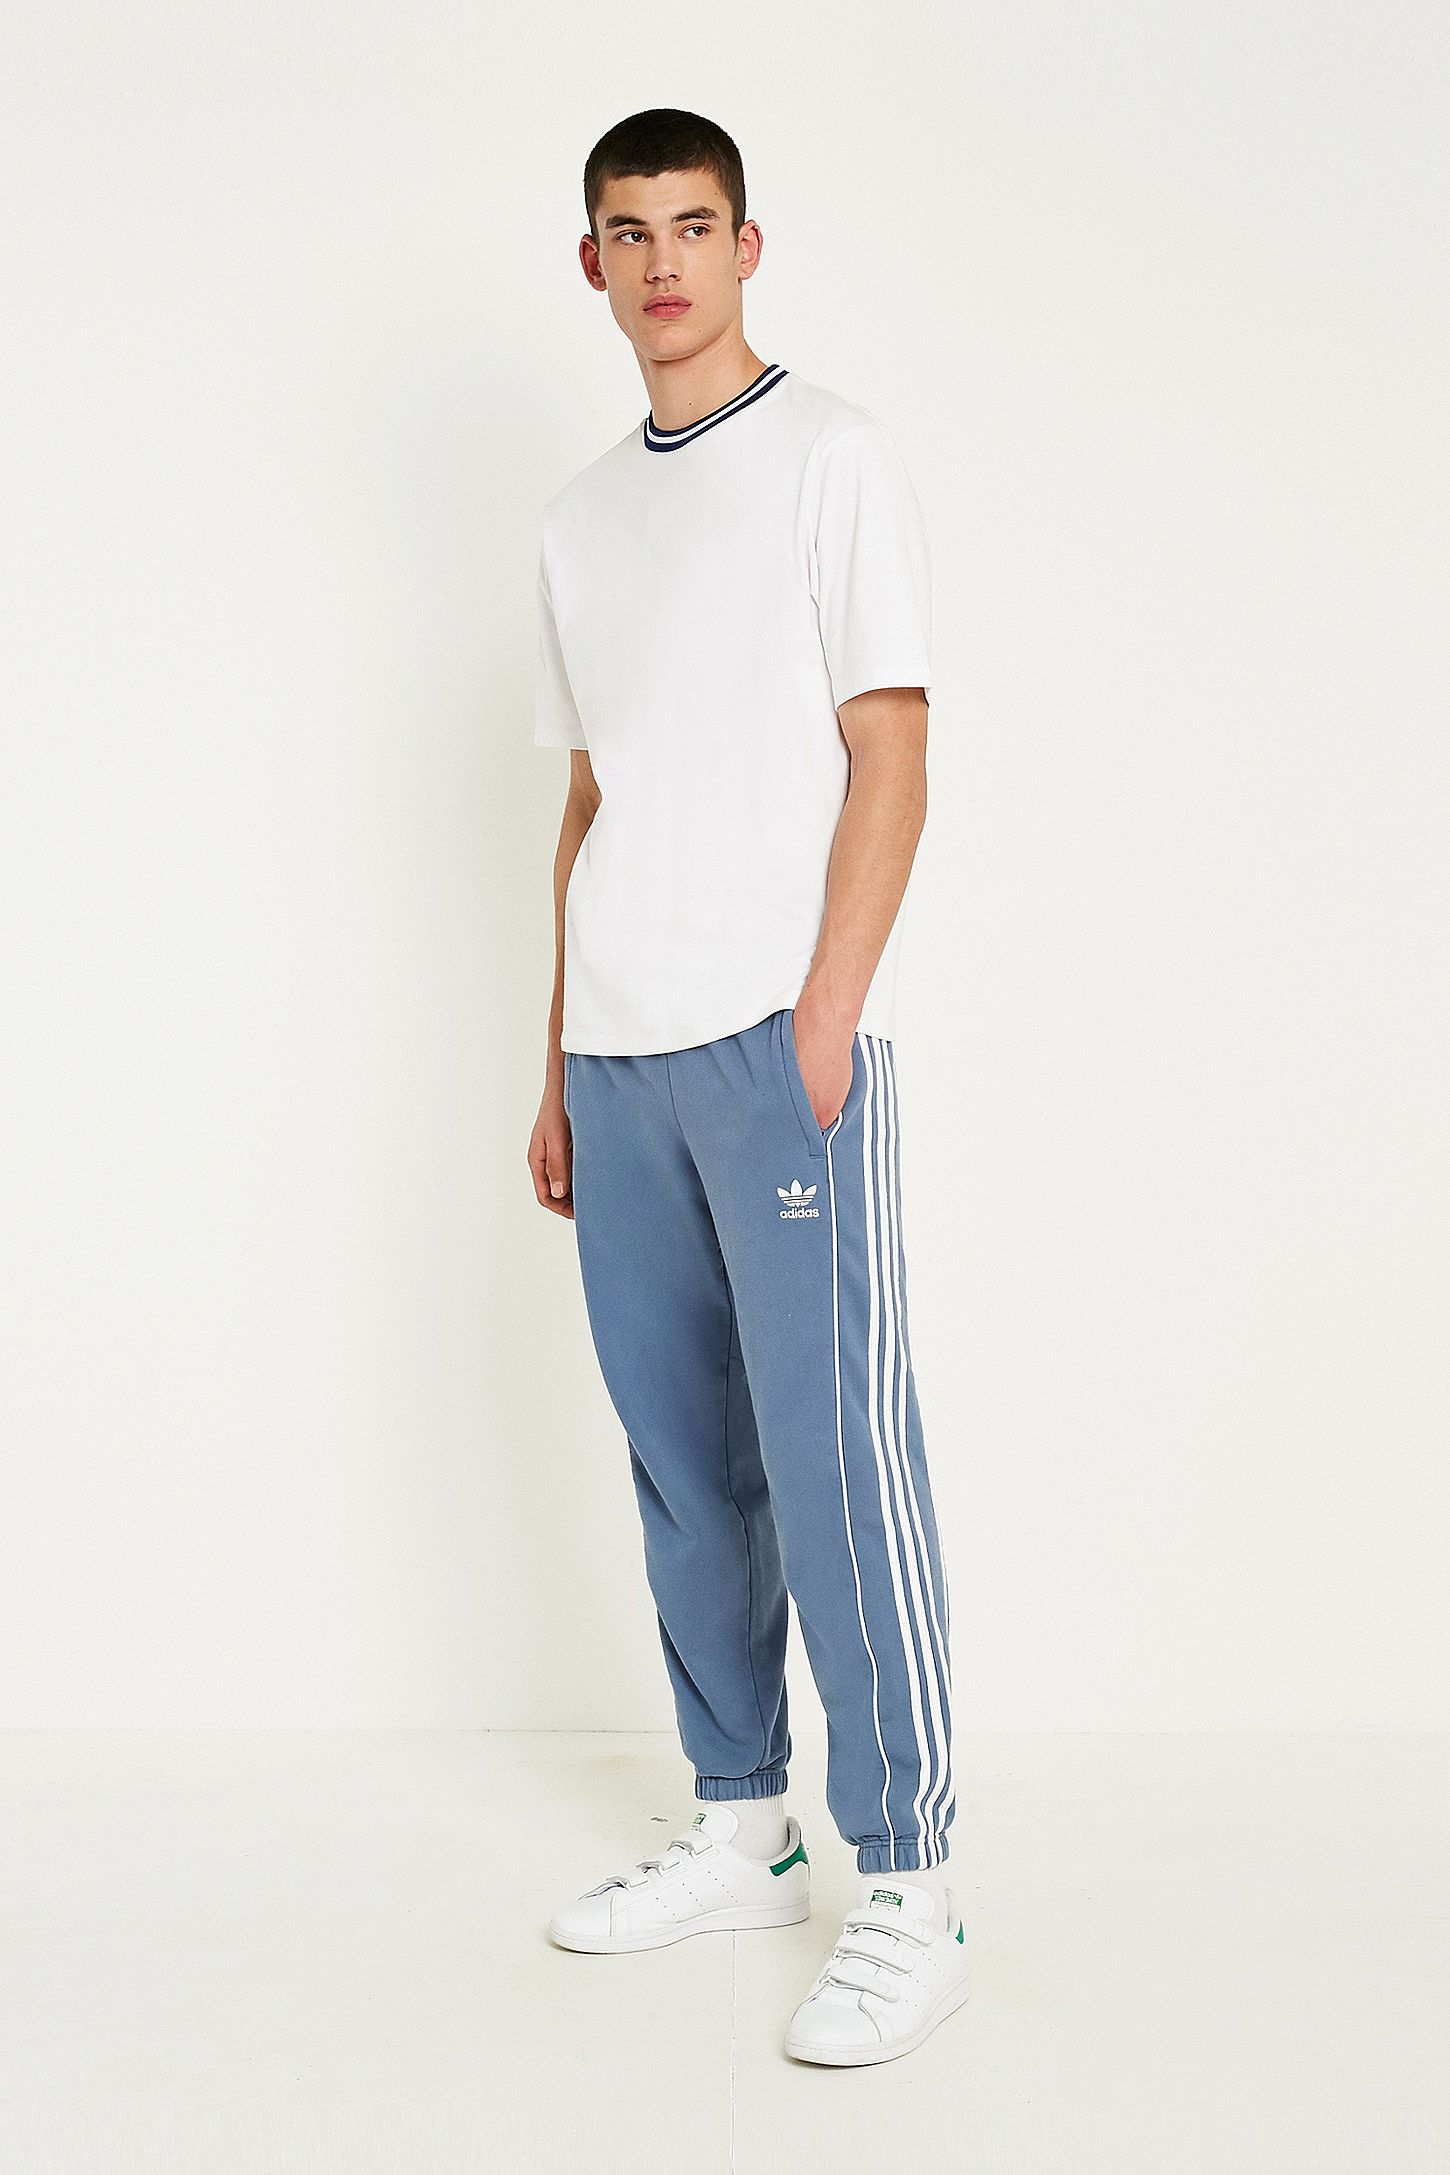 online retailer 0ecb7 7ded1 adidas Raw Steel Pipe Sweatpants. Click on image to zoom. Hover to zoom.  Double Tap to Zoom